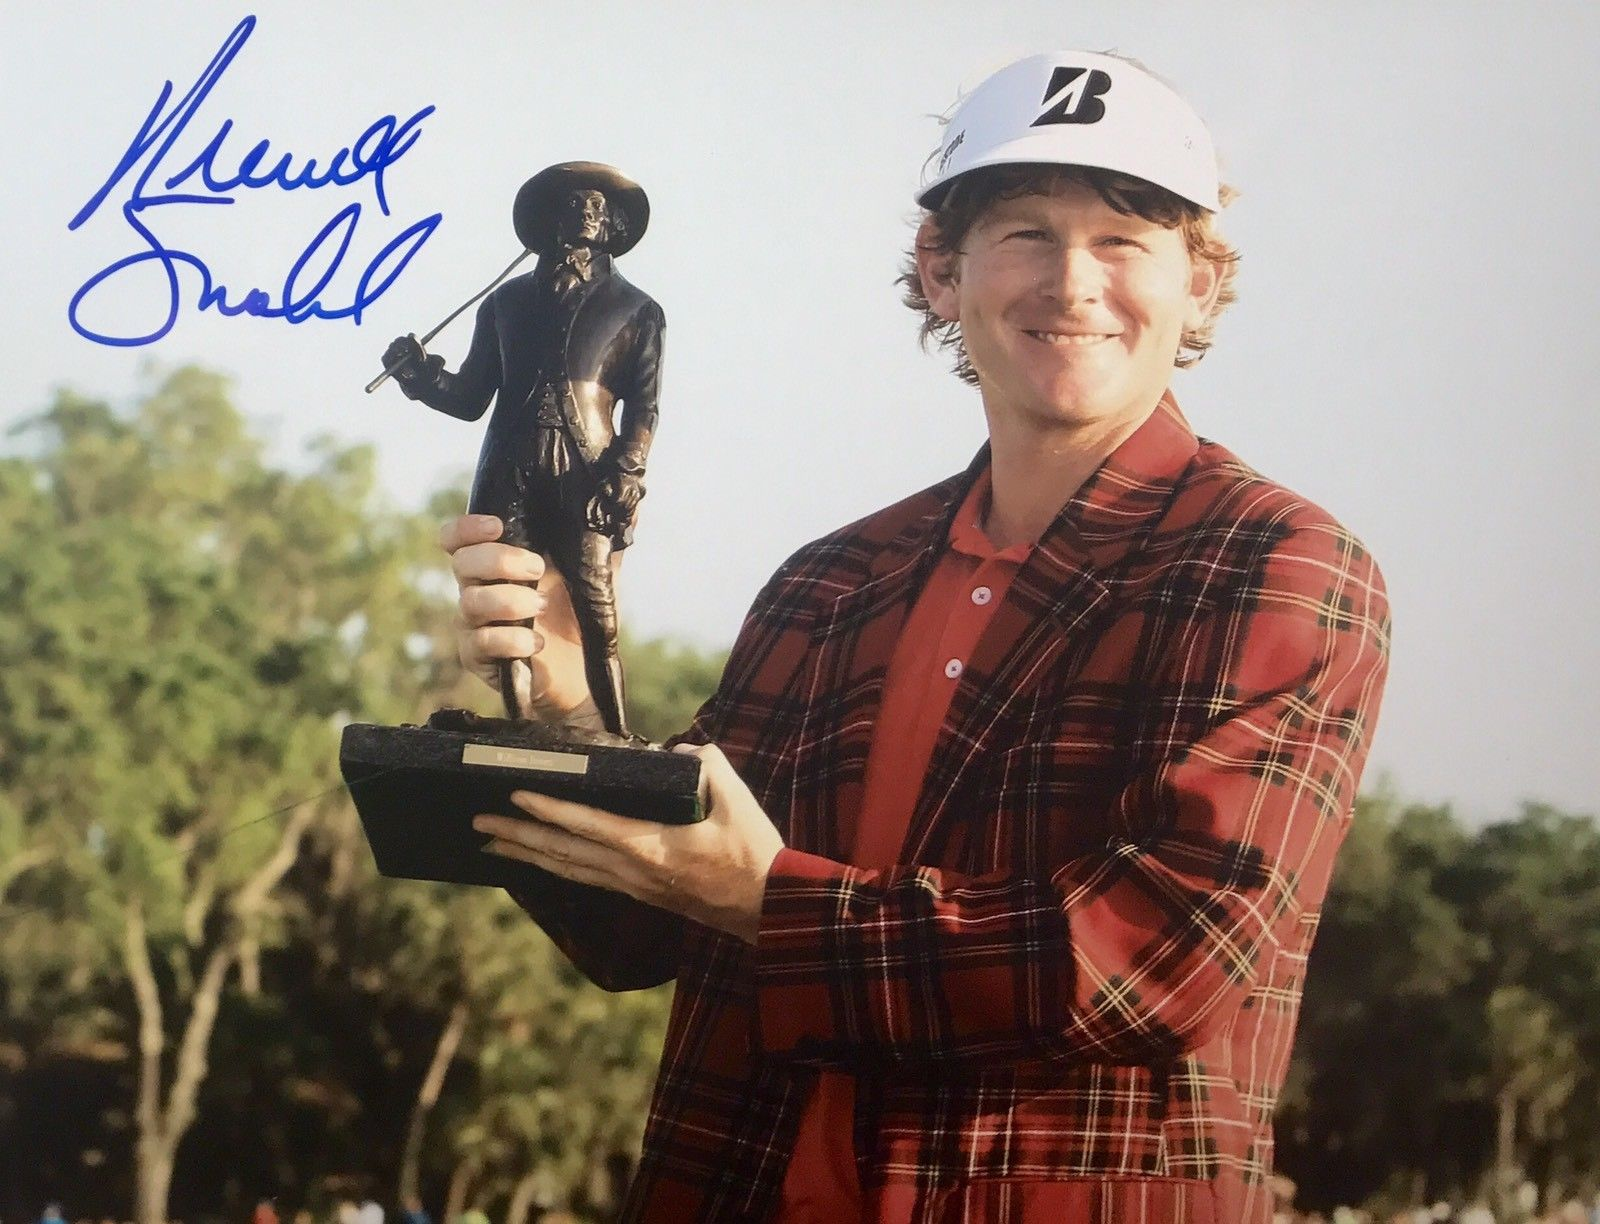 Brandt Snedeker Authentic Signed 8x10 - PGA TOUR ROOKIE OF THE YEAR - Top Notch Signatures LLC